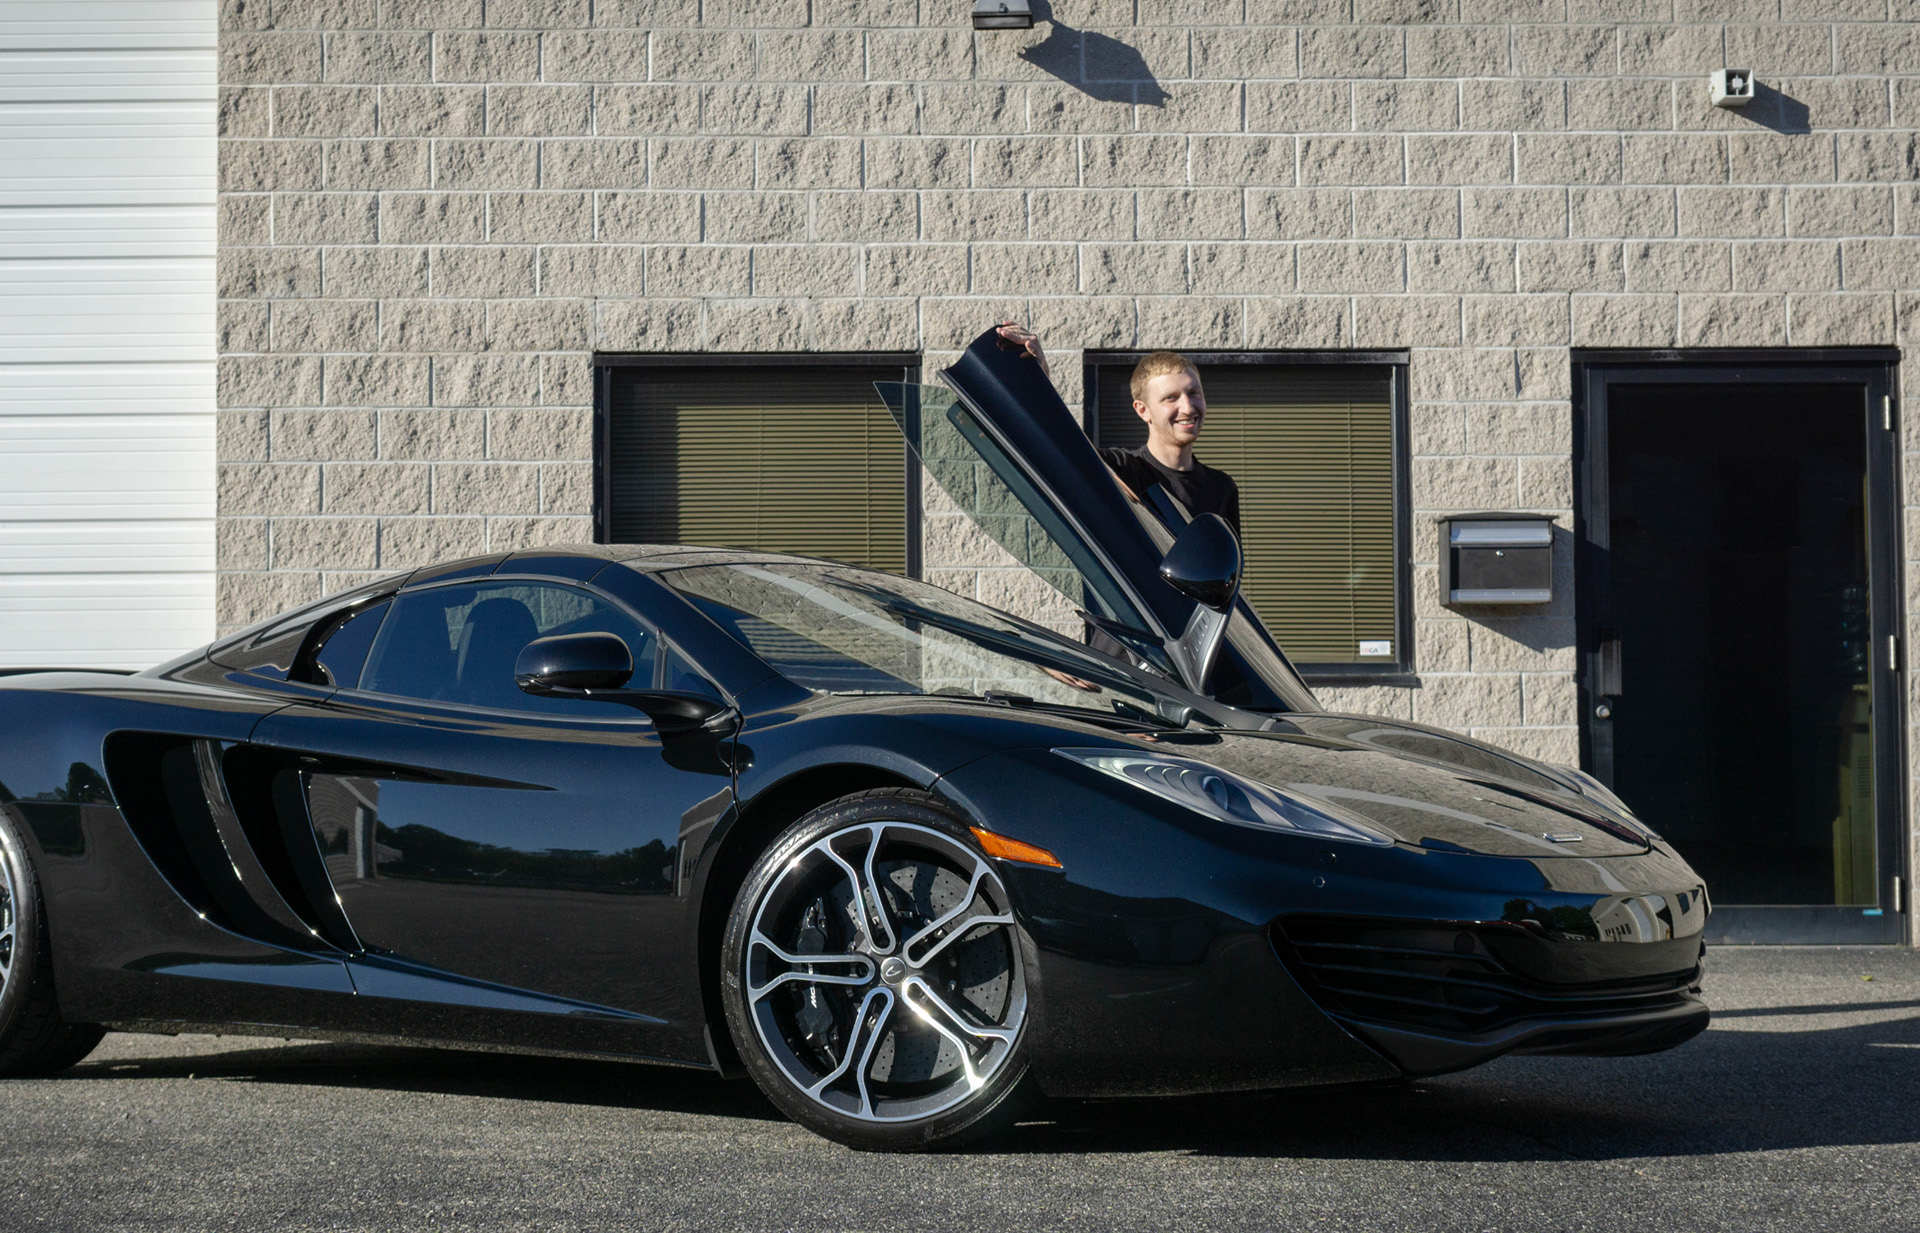 mclaren mp4-12c with person smiling